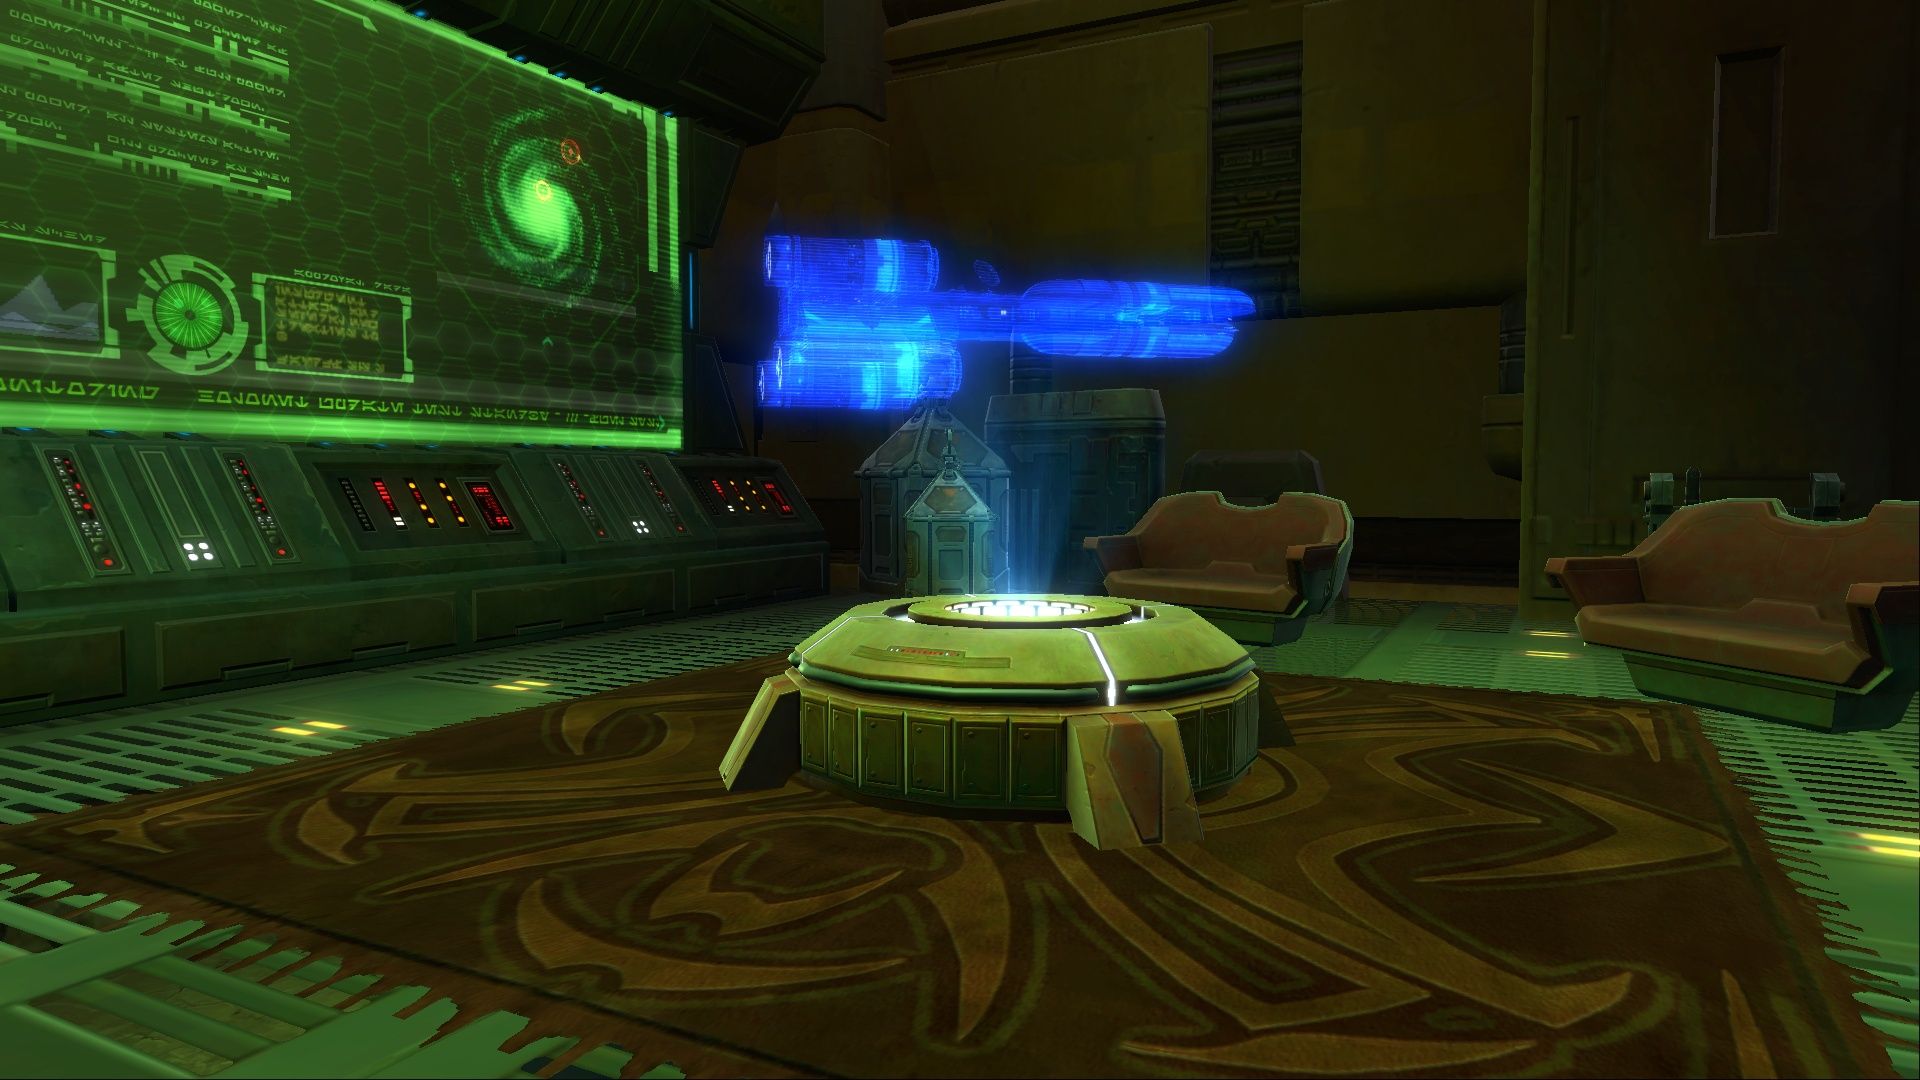 SWTOR Strongholds Decoration Ideas 1 The Barithor